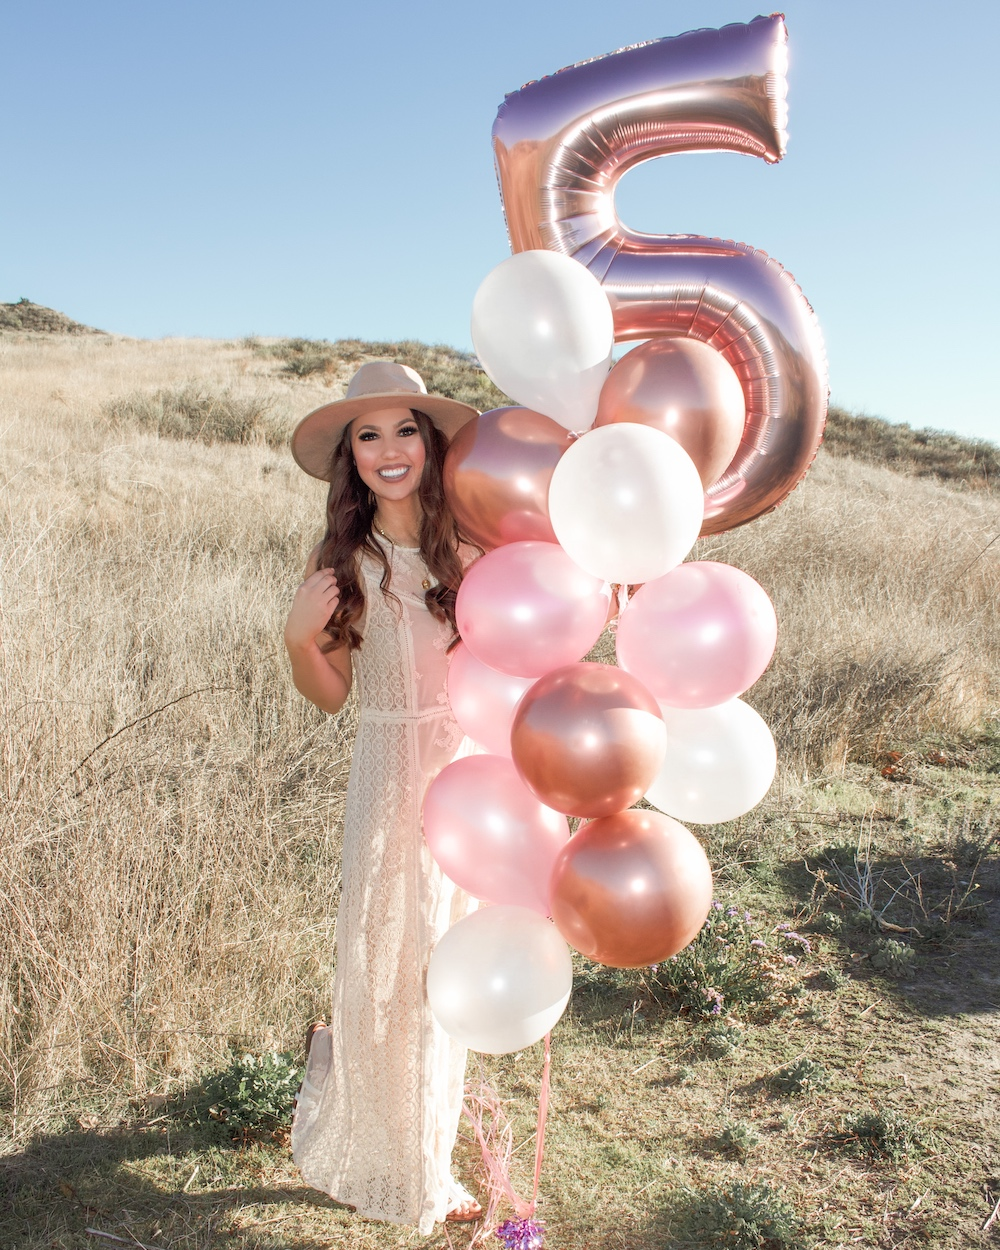 My Styled Life Turns 5 - Blogiversary